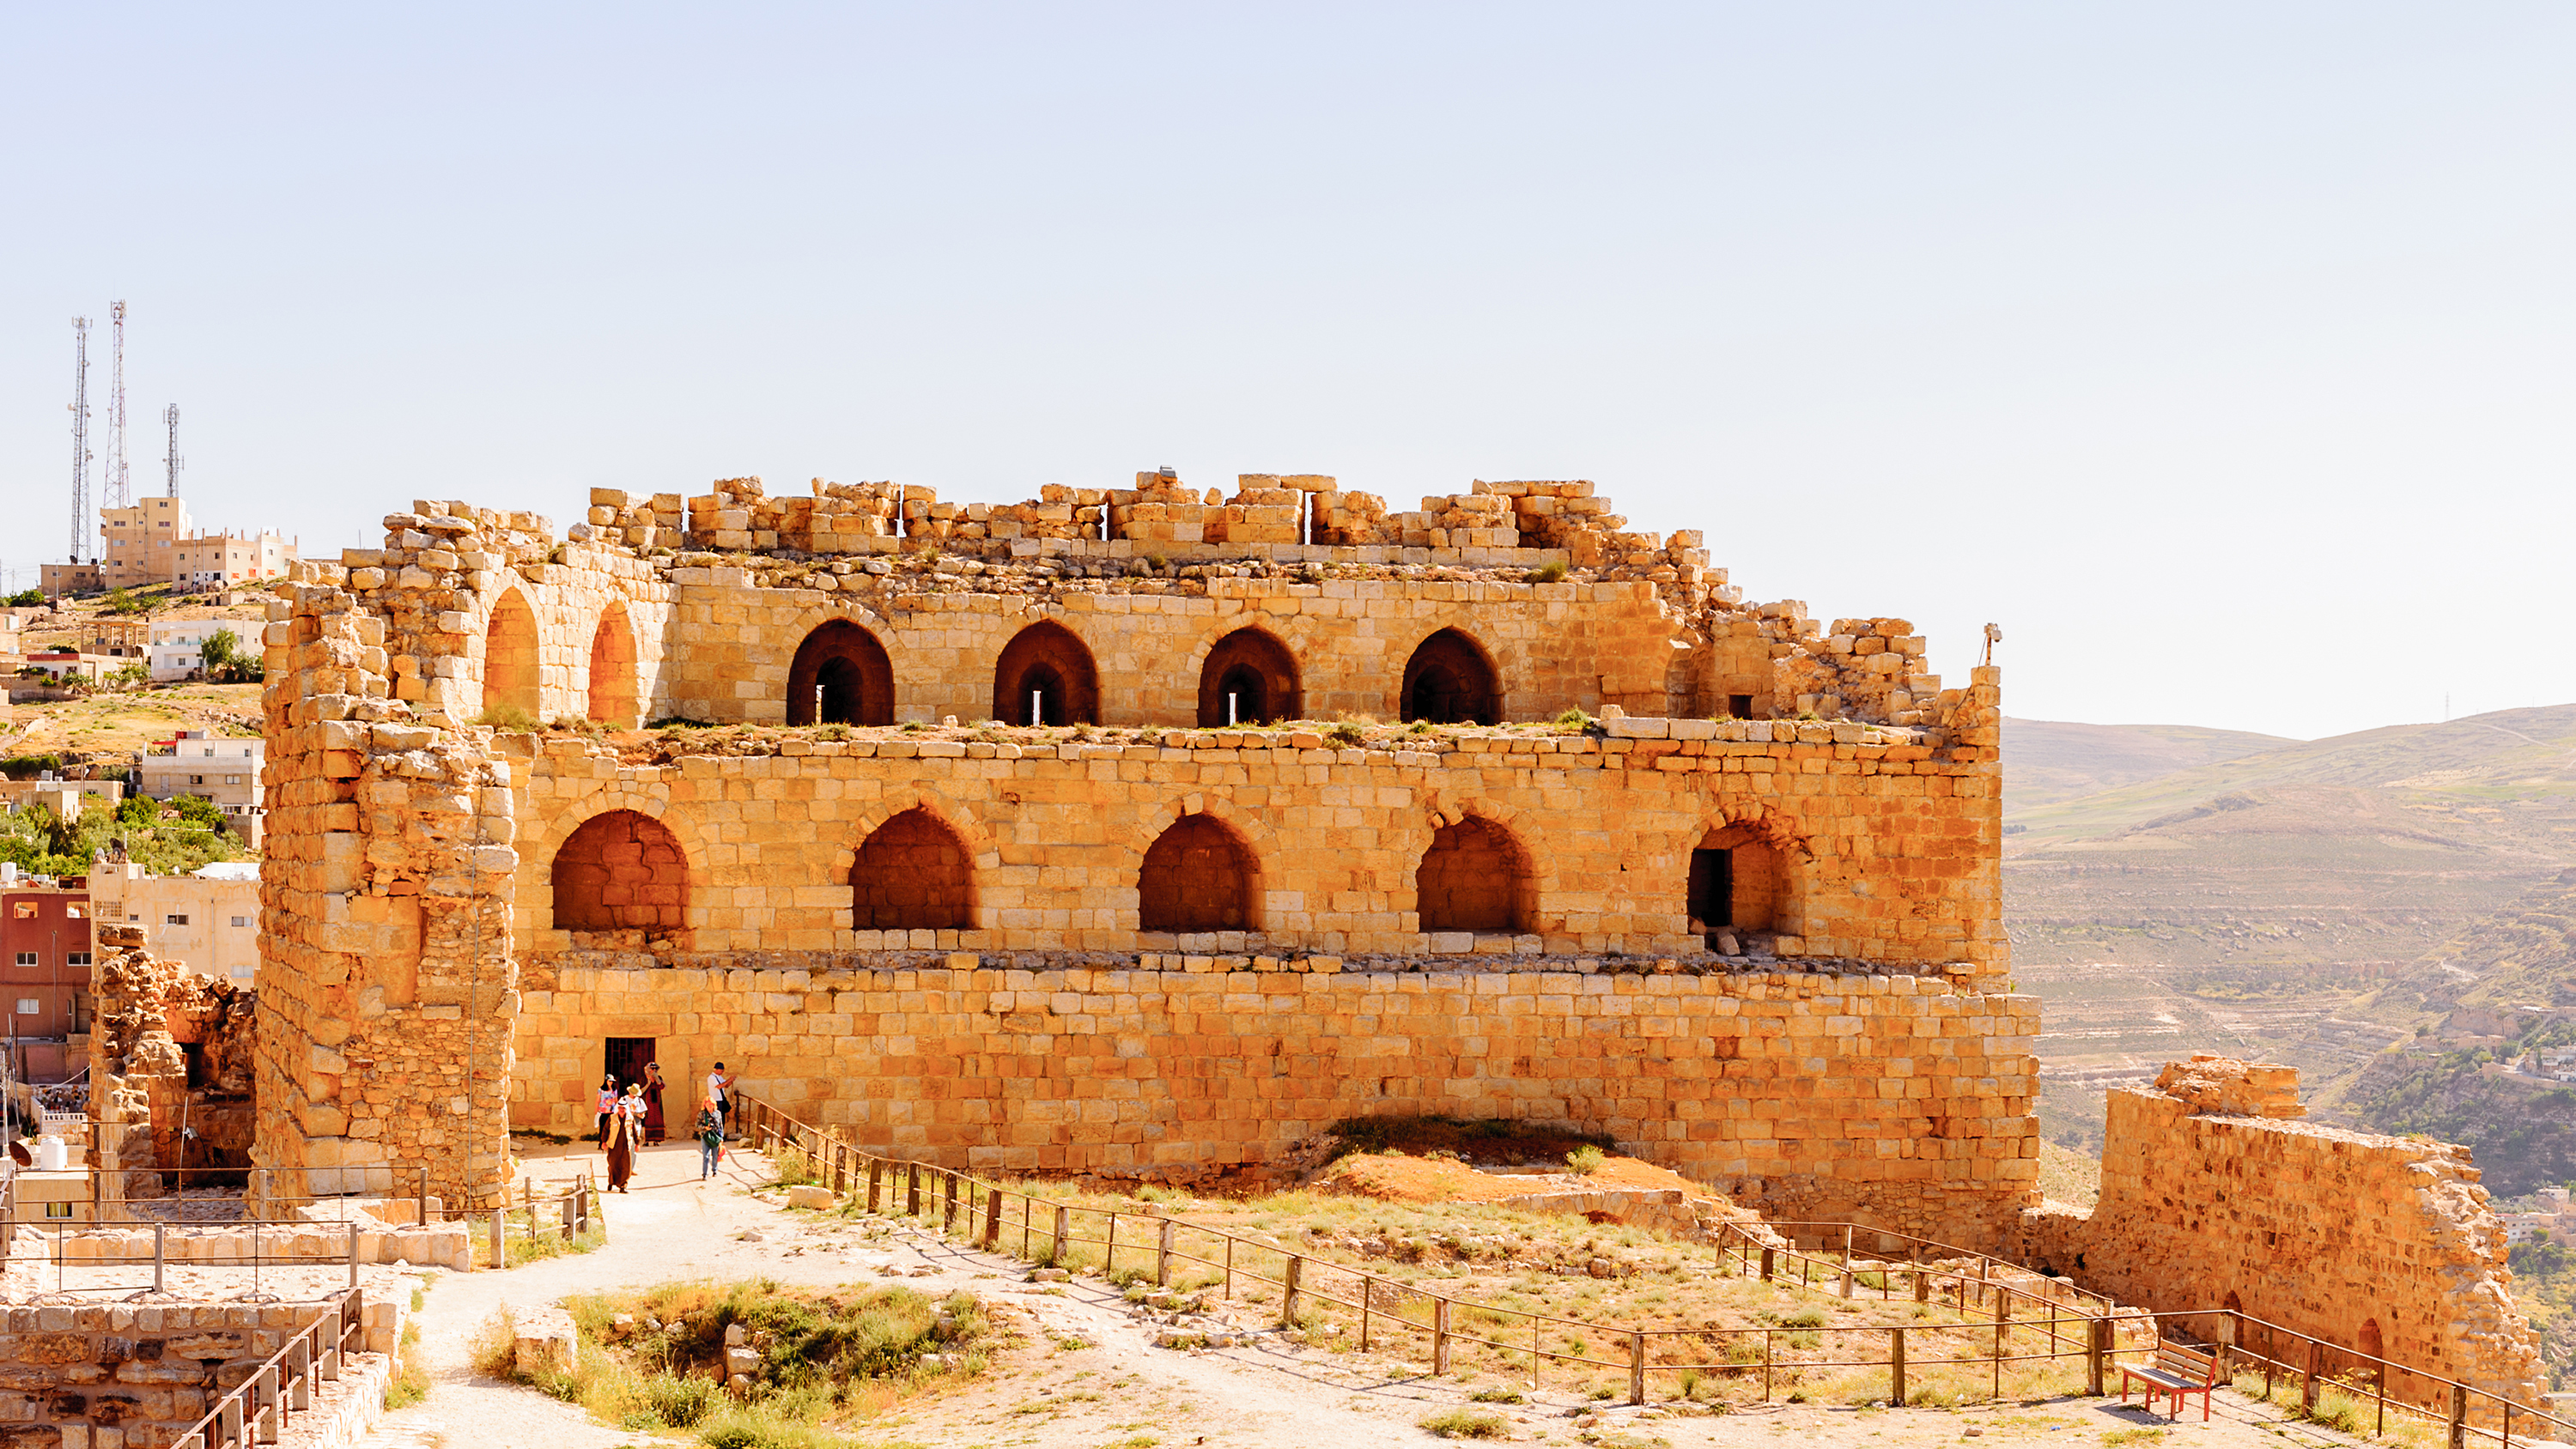 The mighty Kerak Crusader castle